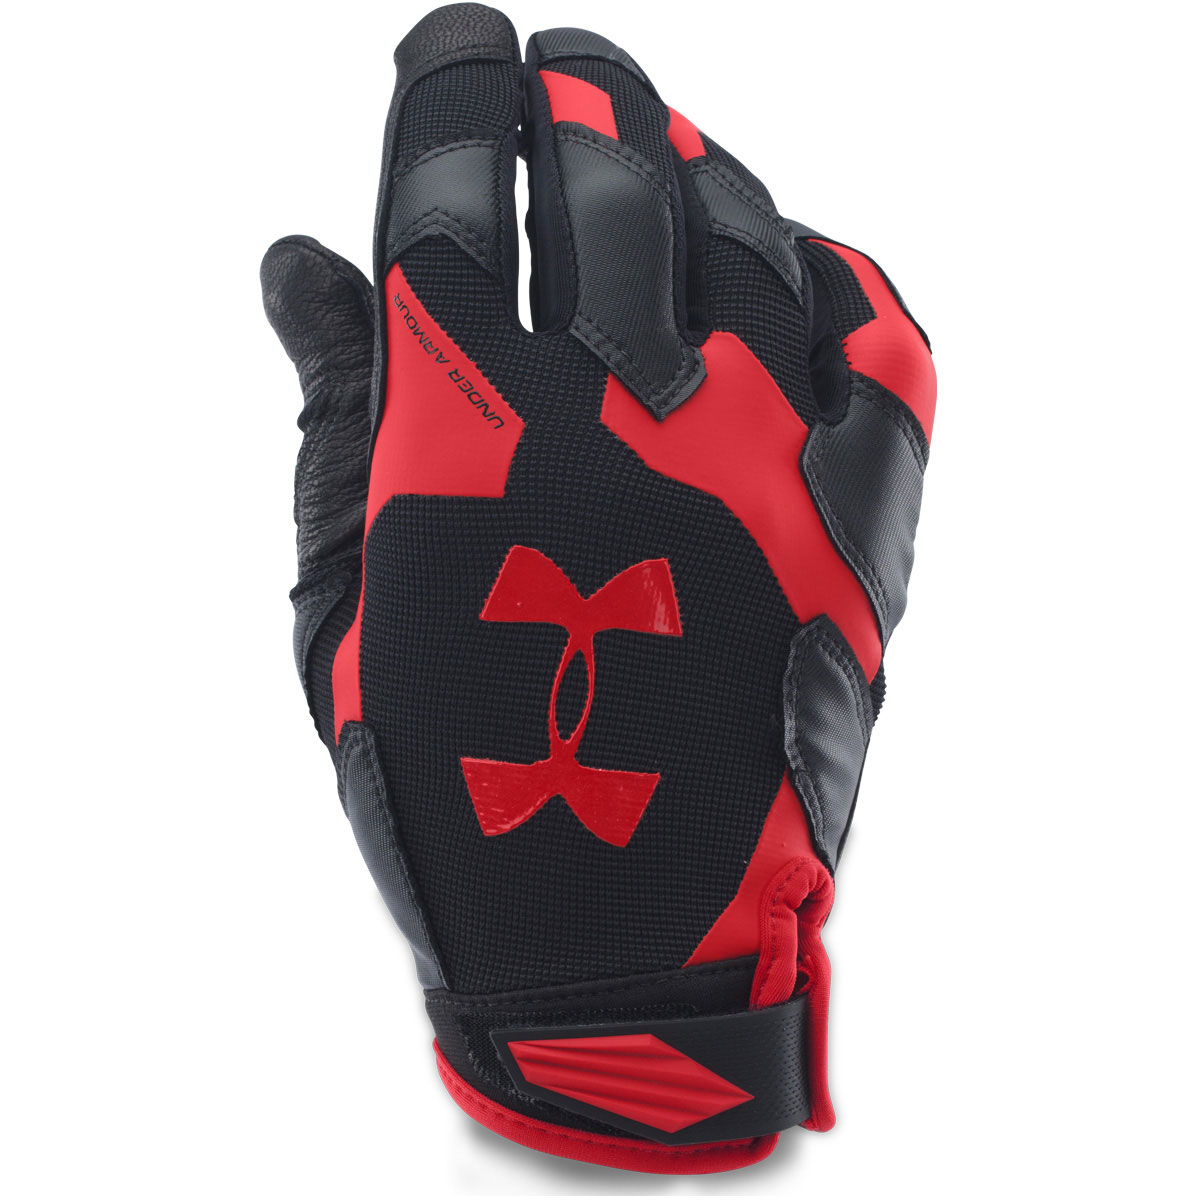 Weight Lifting Gloves Xxl: Under Armour 2017 Mens UA Renegade Training Gym Weight